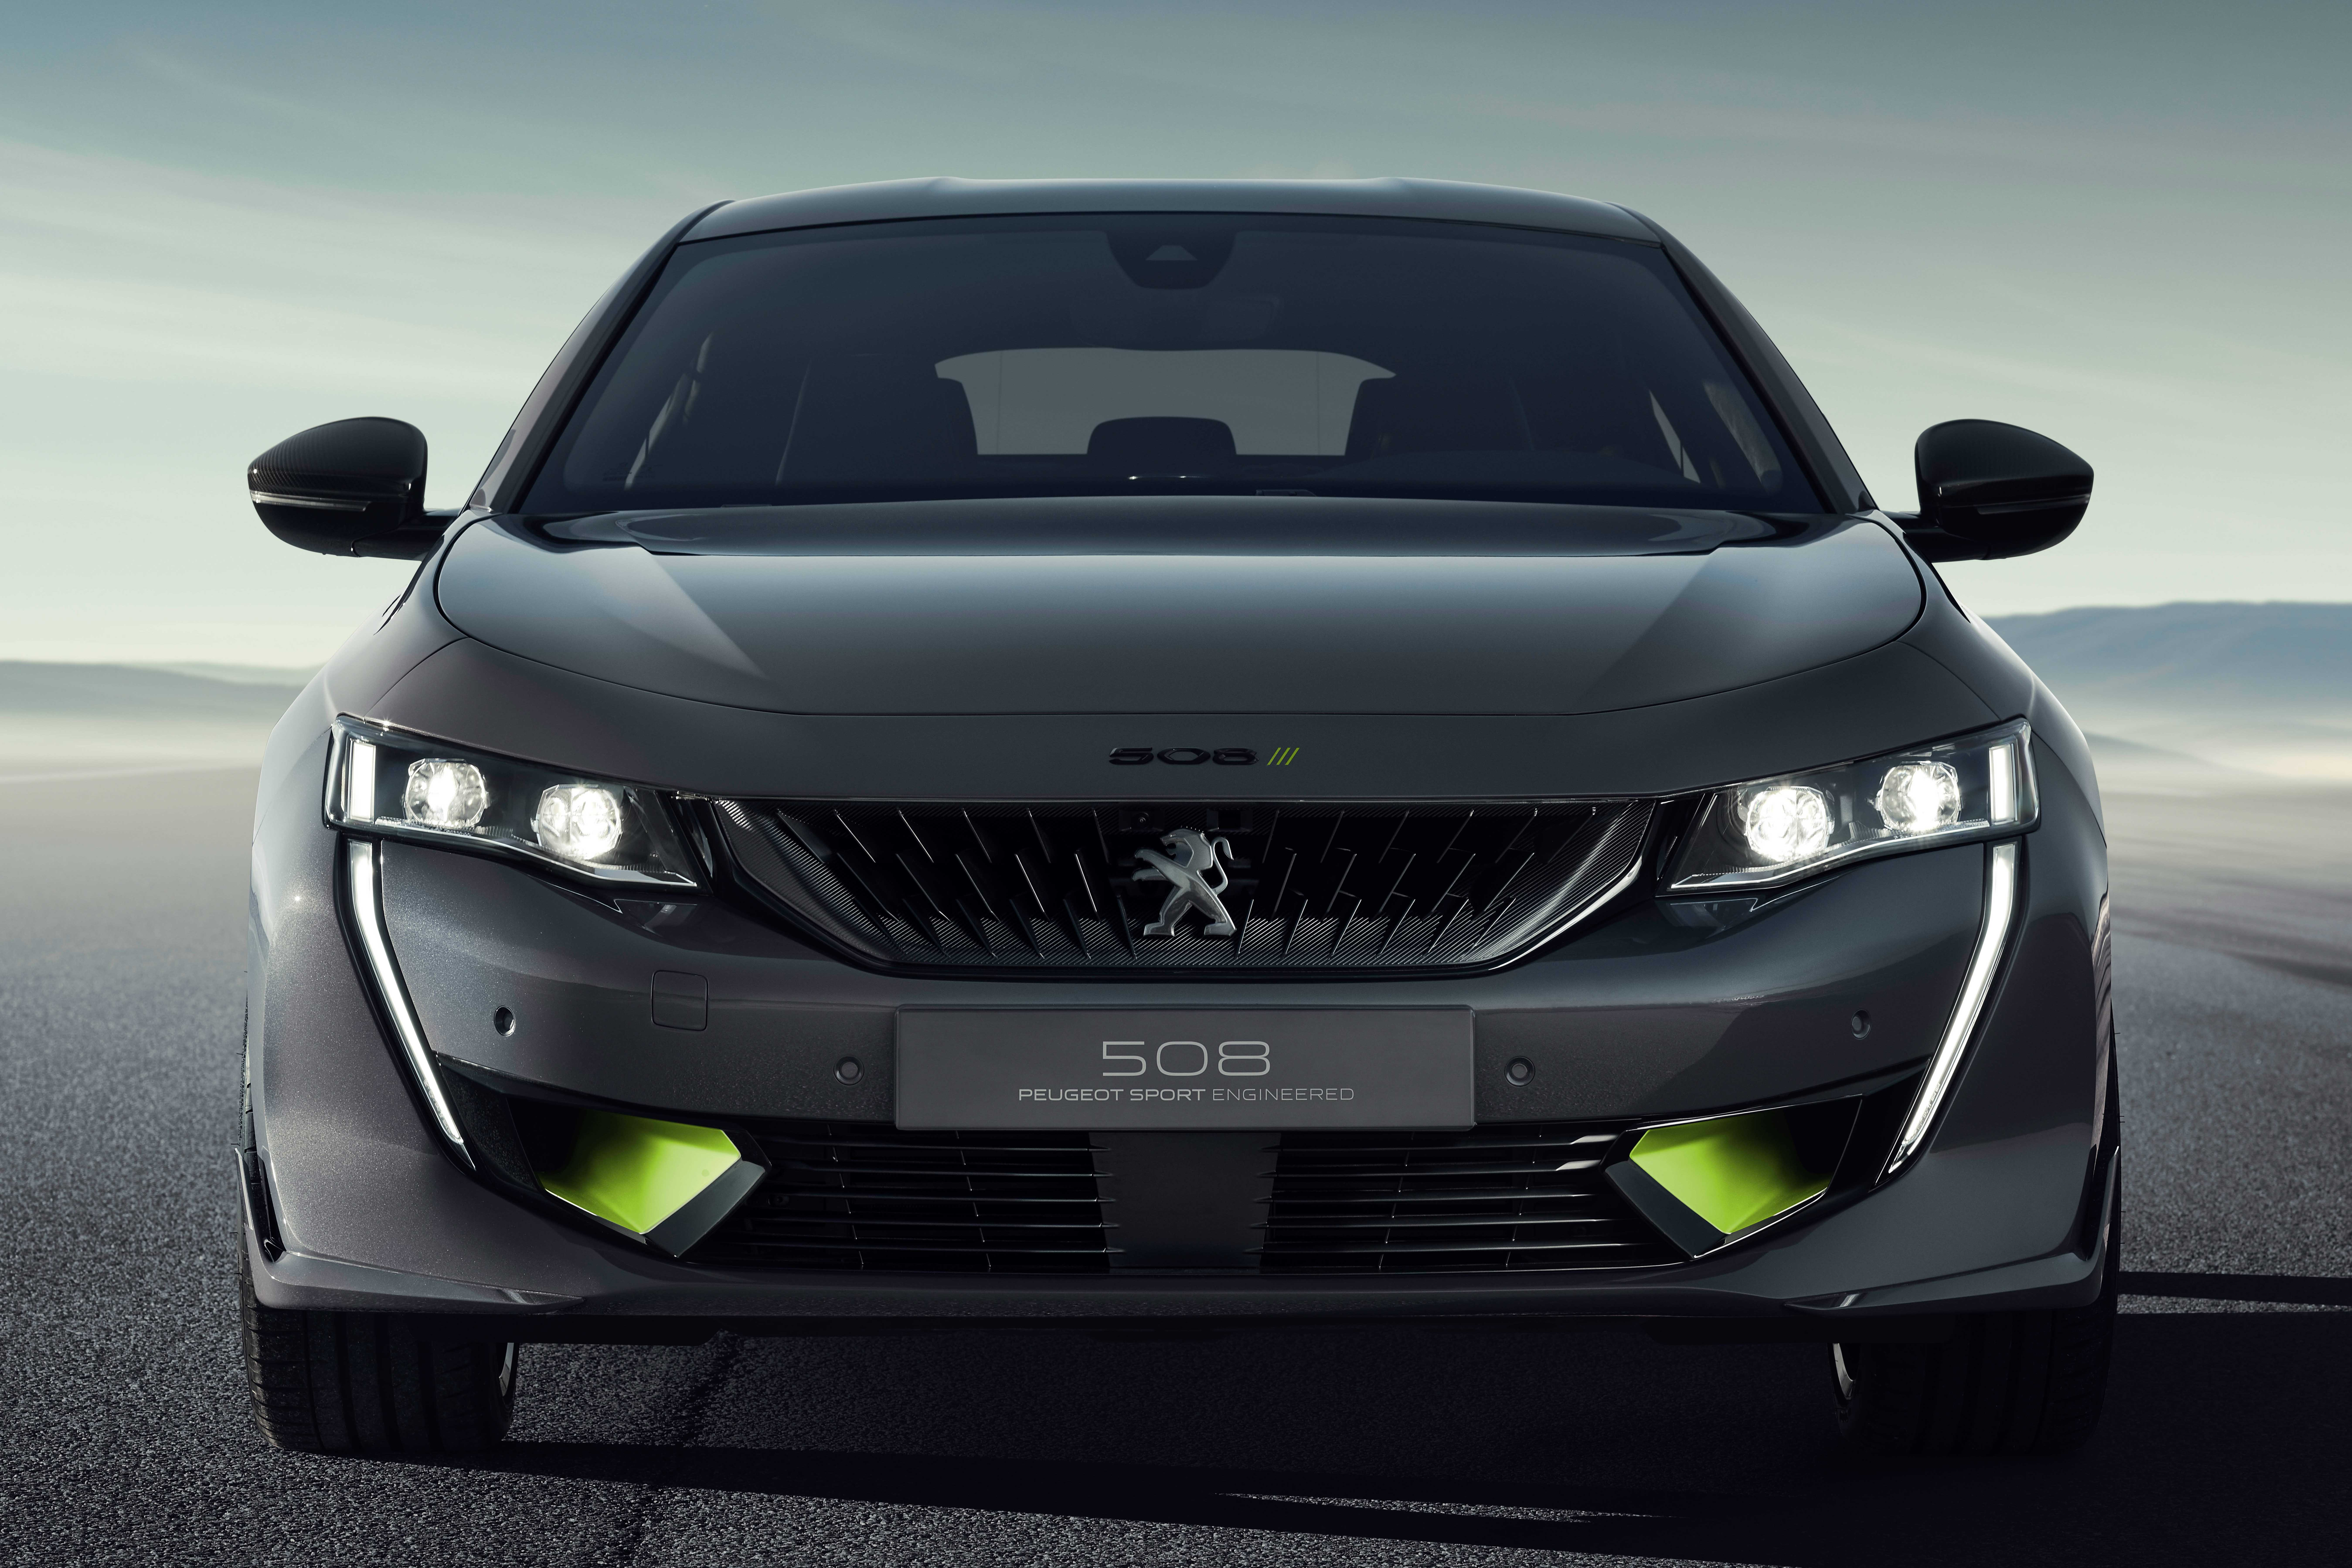 508 Peugeot Sport Engineered Concept shown ahead of Geneva debut – electric AWD, 0-100 km/h in 4.3s! Image #924346